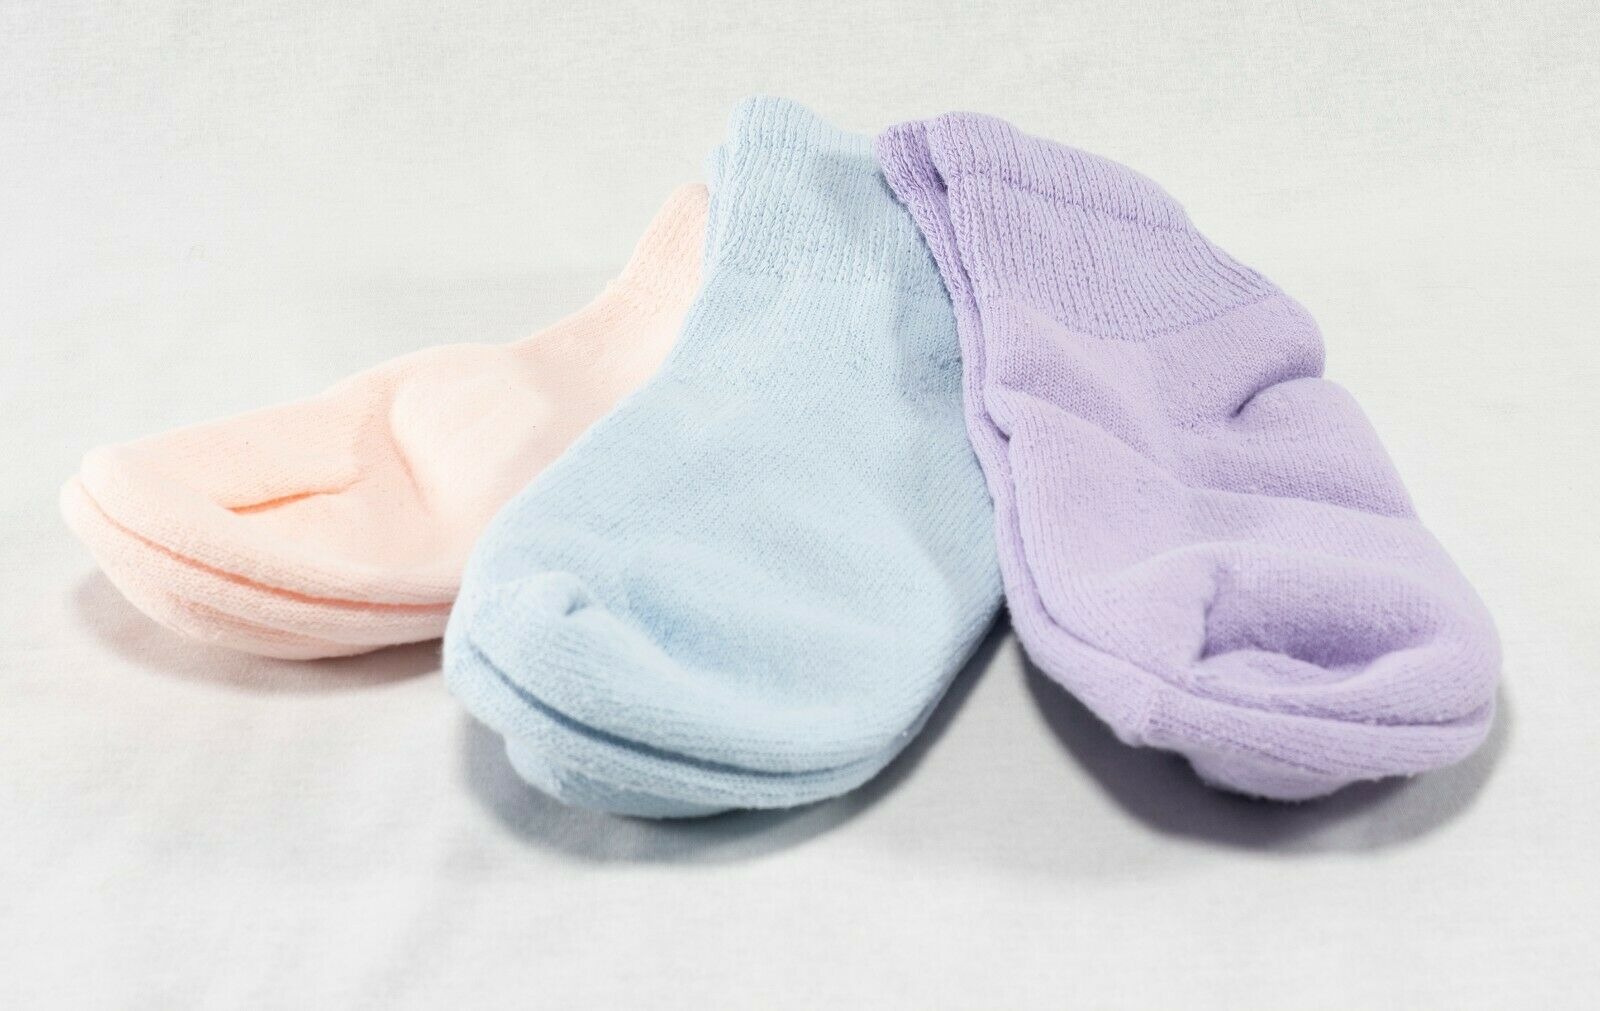 Ladies Bed Socks Cozy Wrom Made in USA Set of 3 Winter bed Toasty 3 PAIRS Clothing, Shoes & Accessories